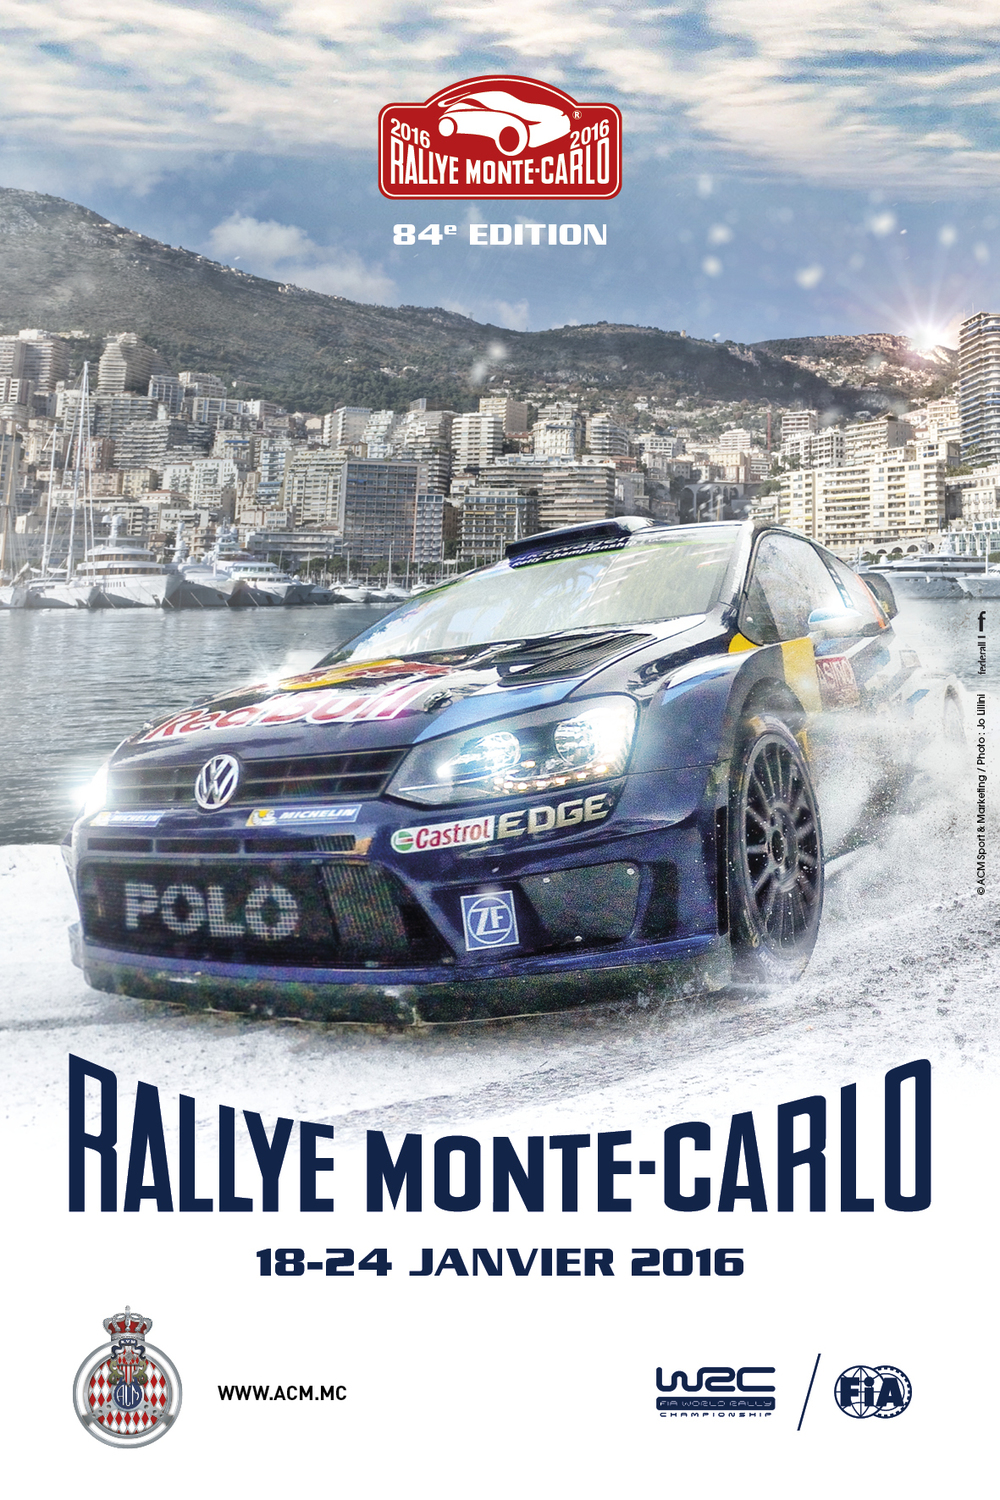 ACM Automobile Club de Monaco, Rally, WRC World Rally Championship, Monte Carlo Rally Poster